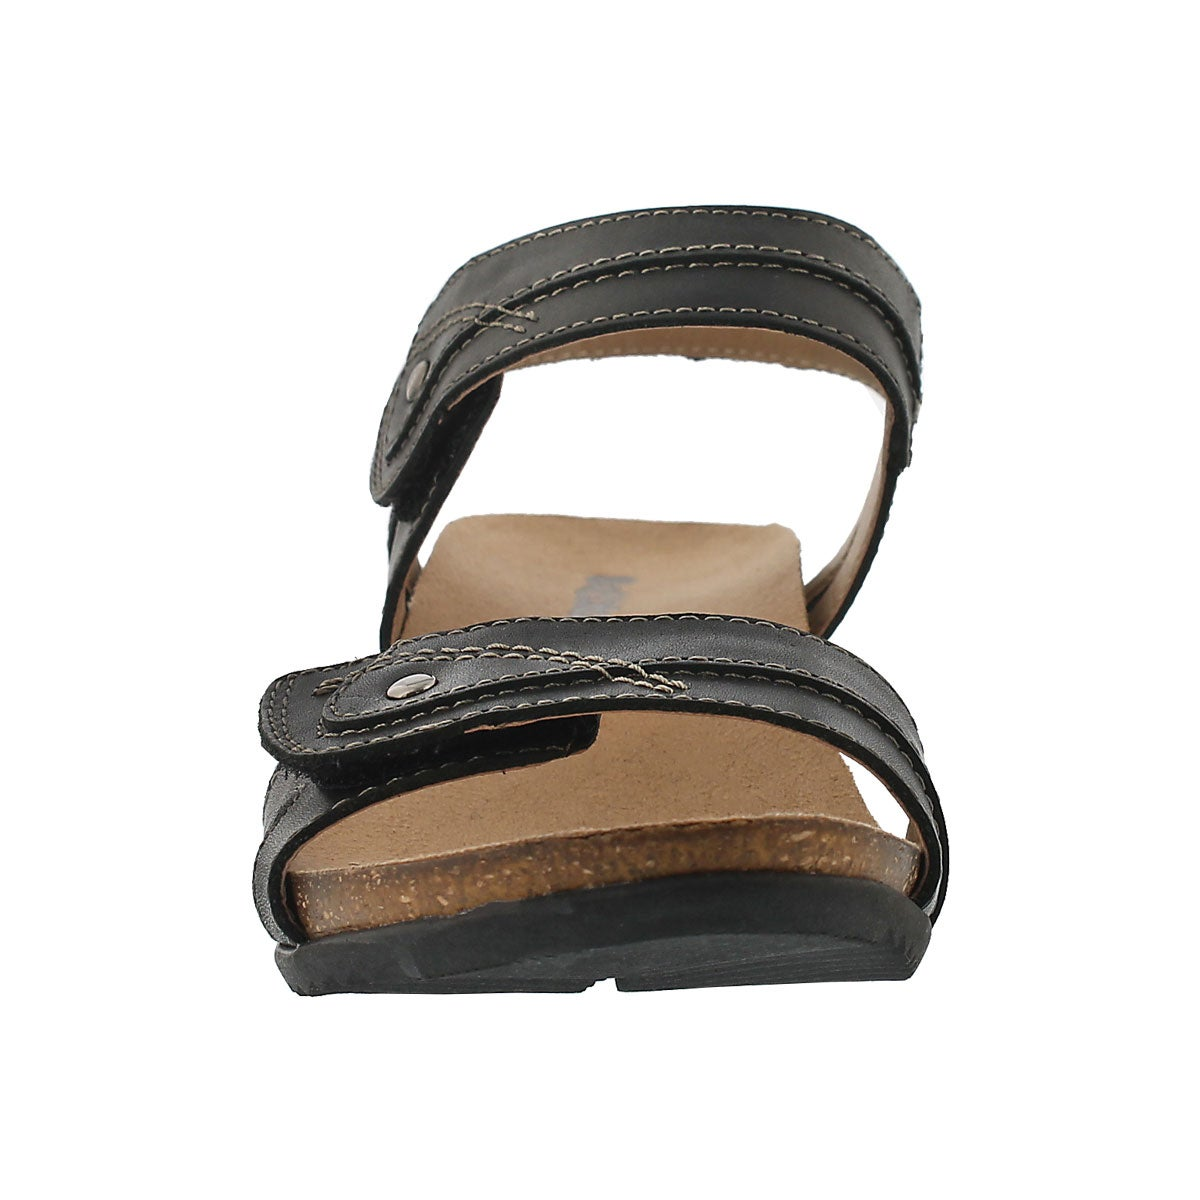 Lds Keira black wedge sandal